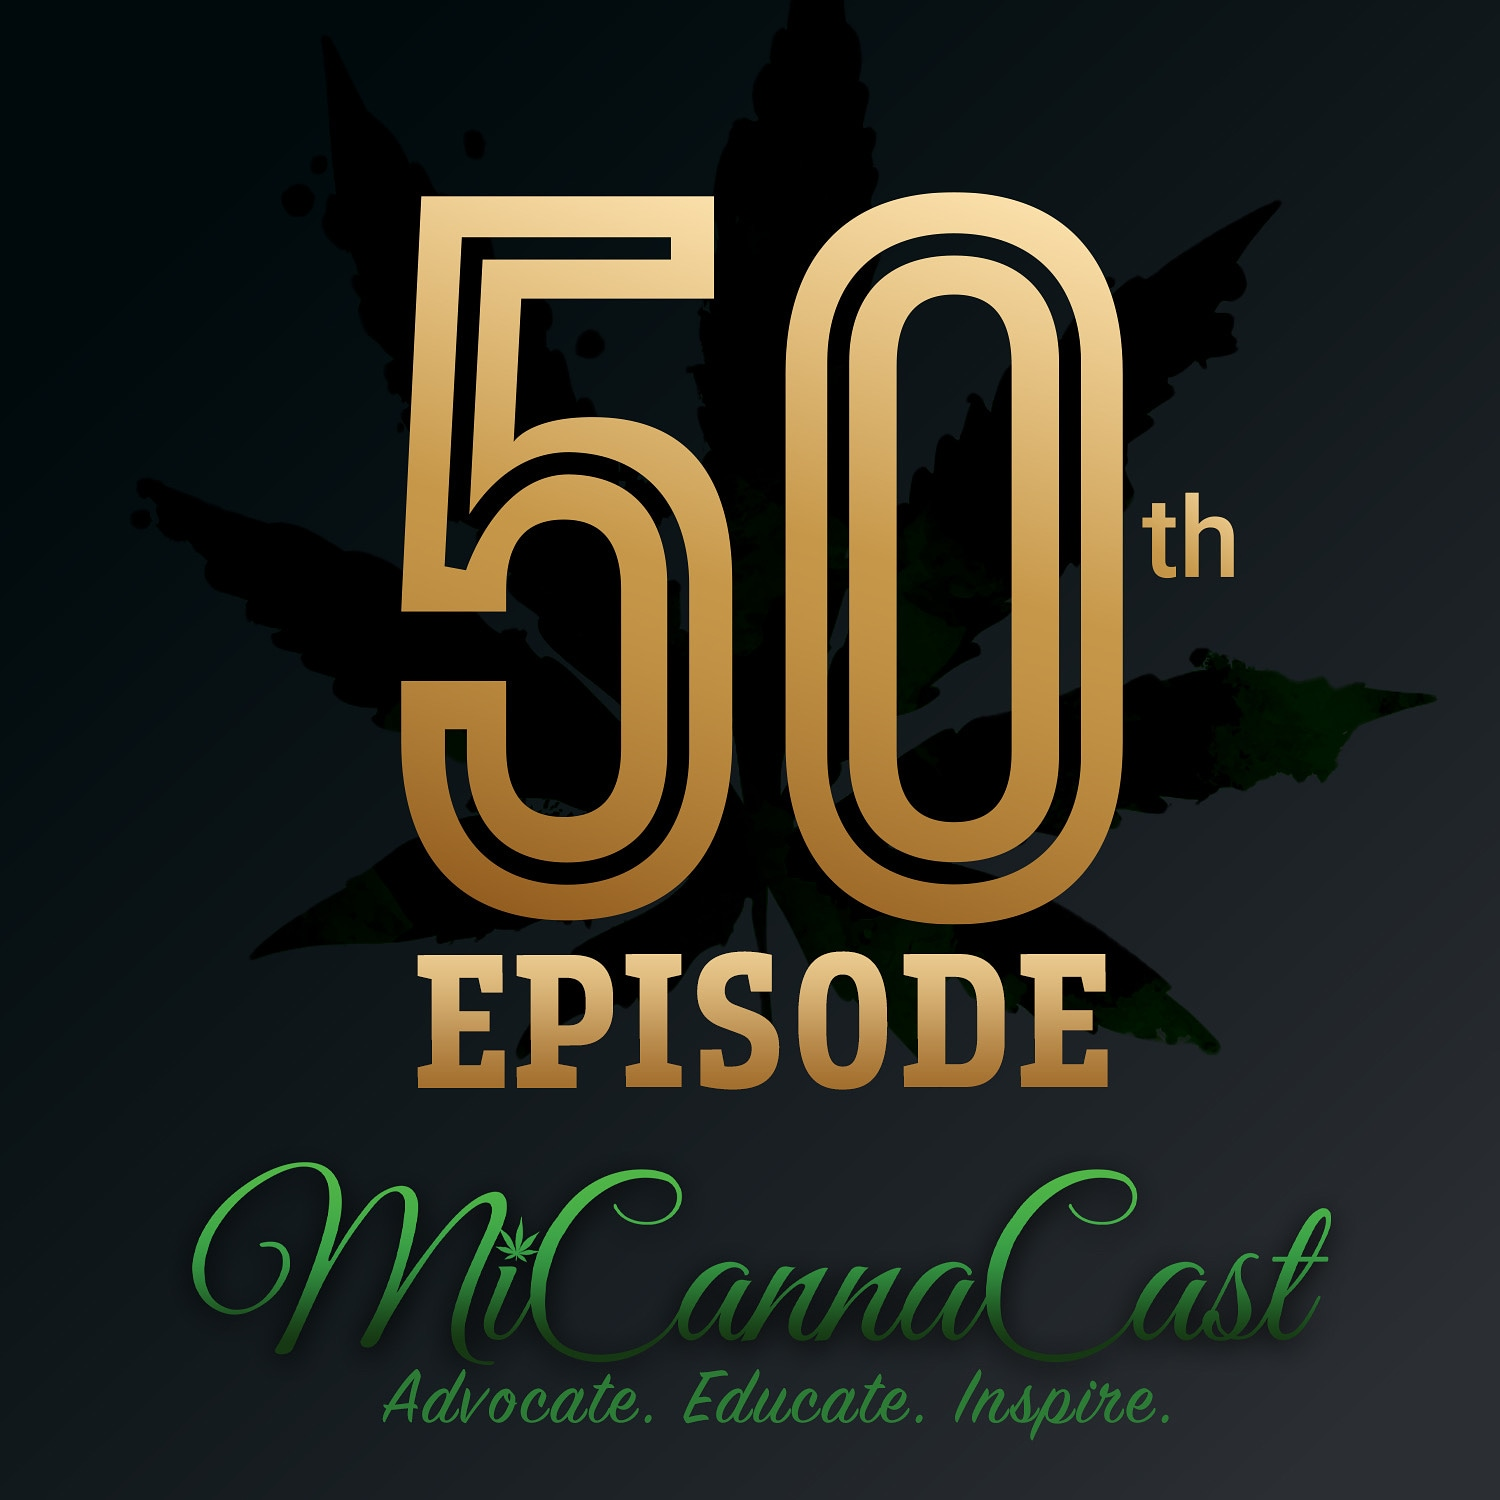 MiCannaCast Episode 50